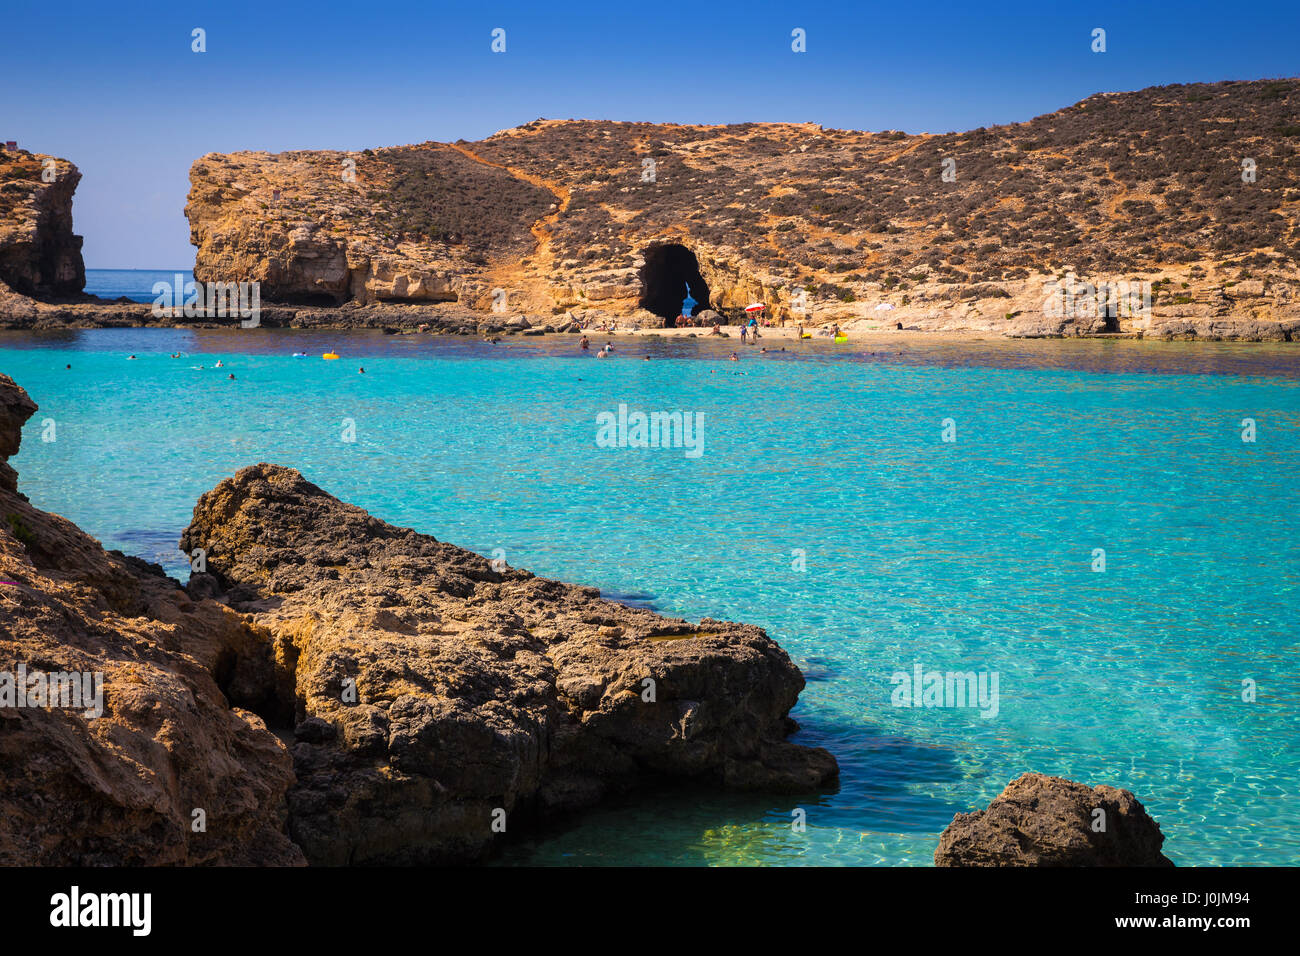 Comino, Malta - Beautiful azure sea water at the famous Bluw Lagoon of Comino with snorkeling tourists enjoying - Stock Image